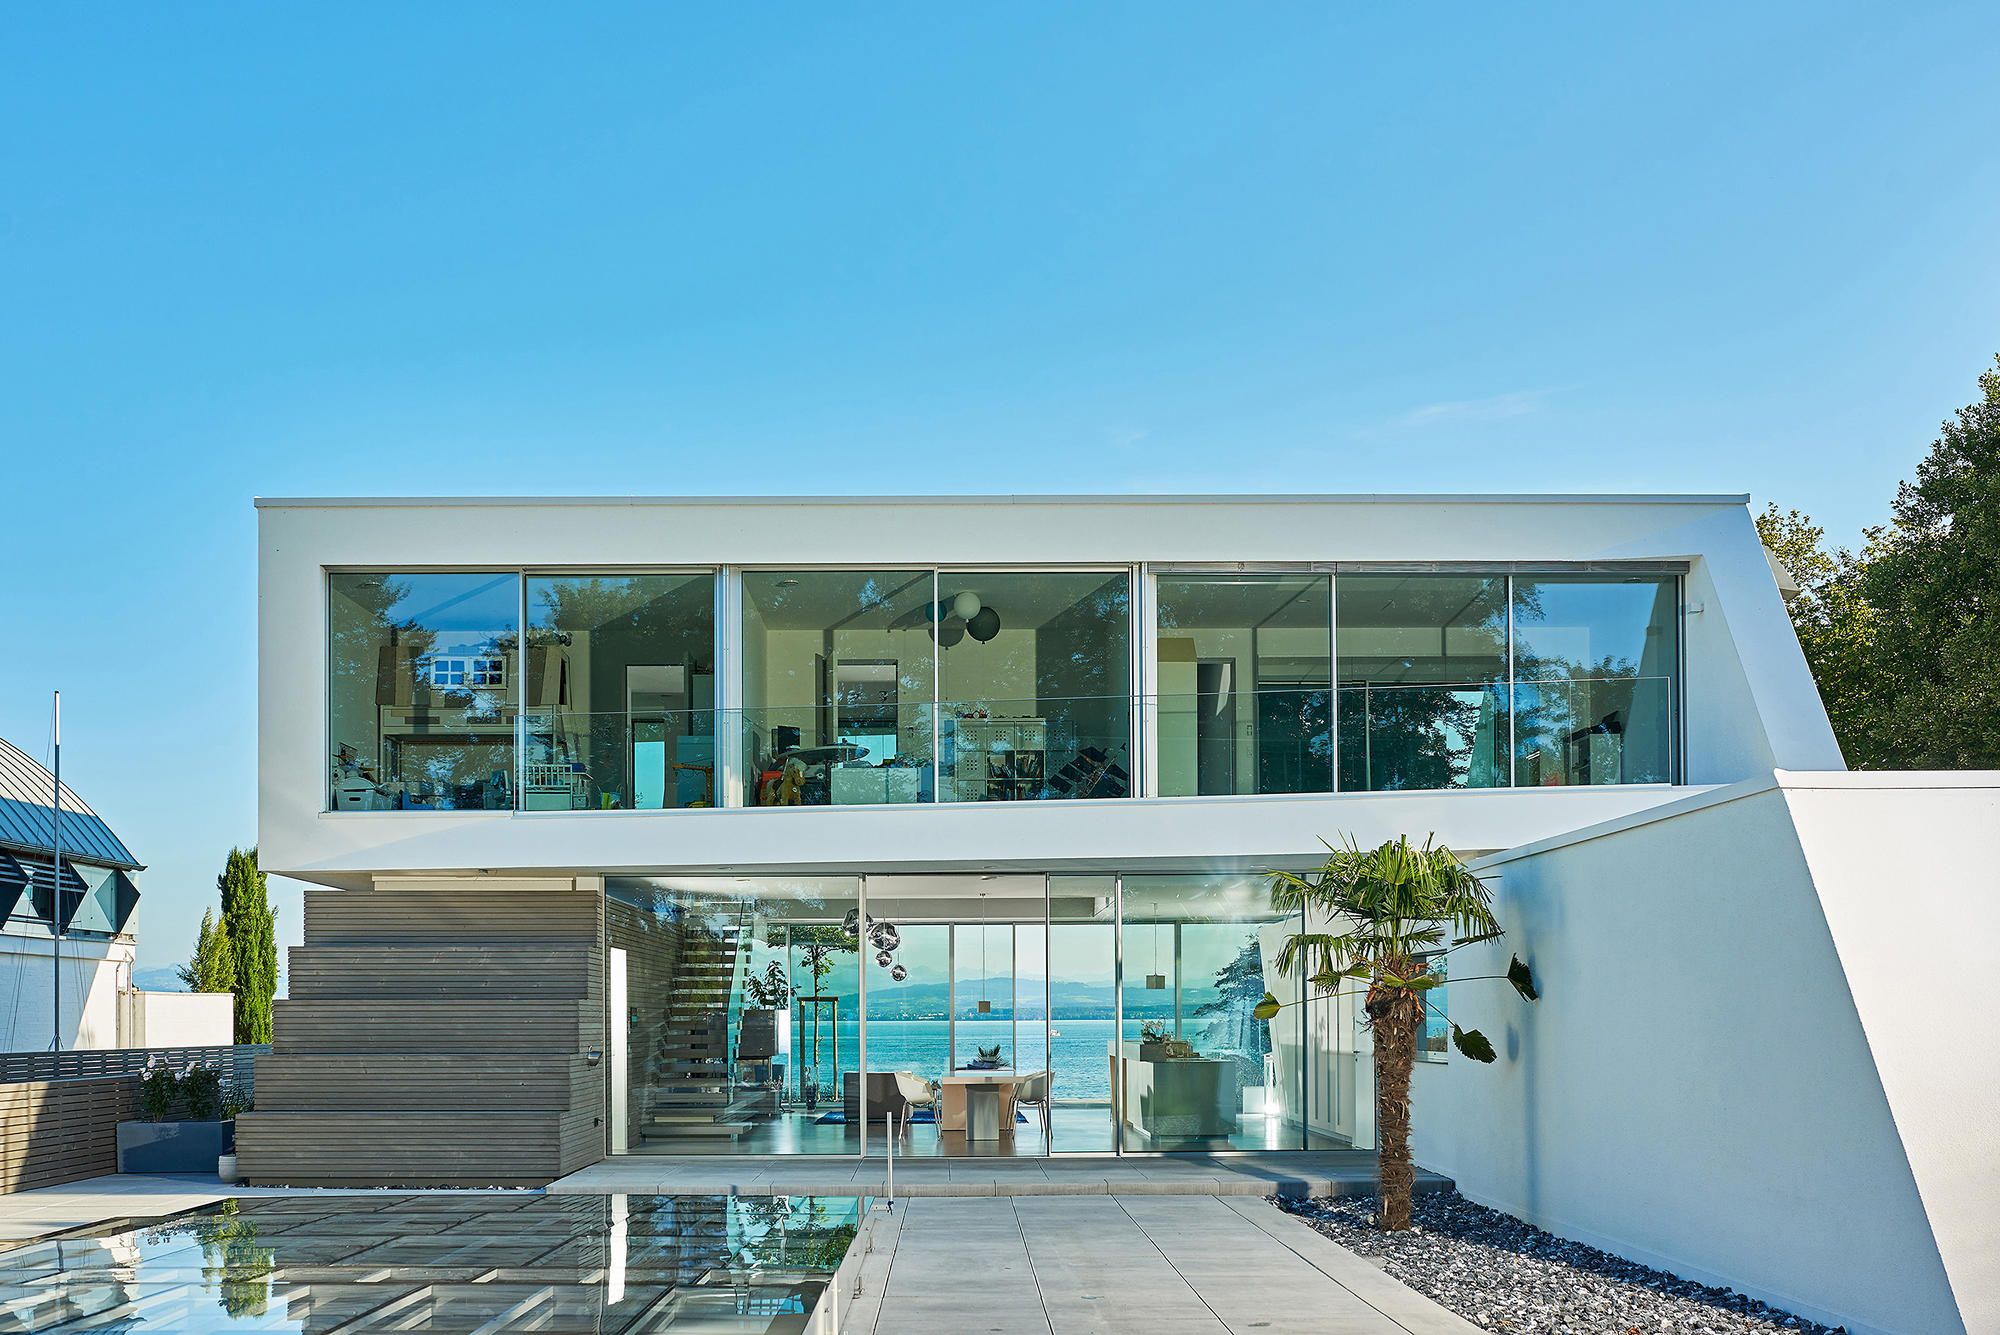 solarlux-projects-cero-villa-bodensee-034-arcit18